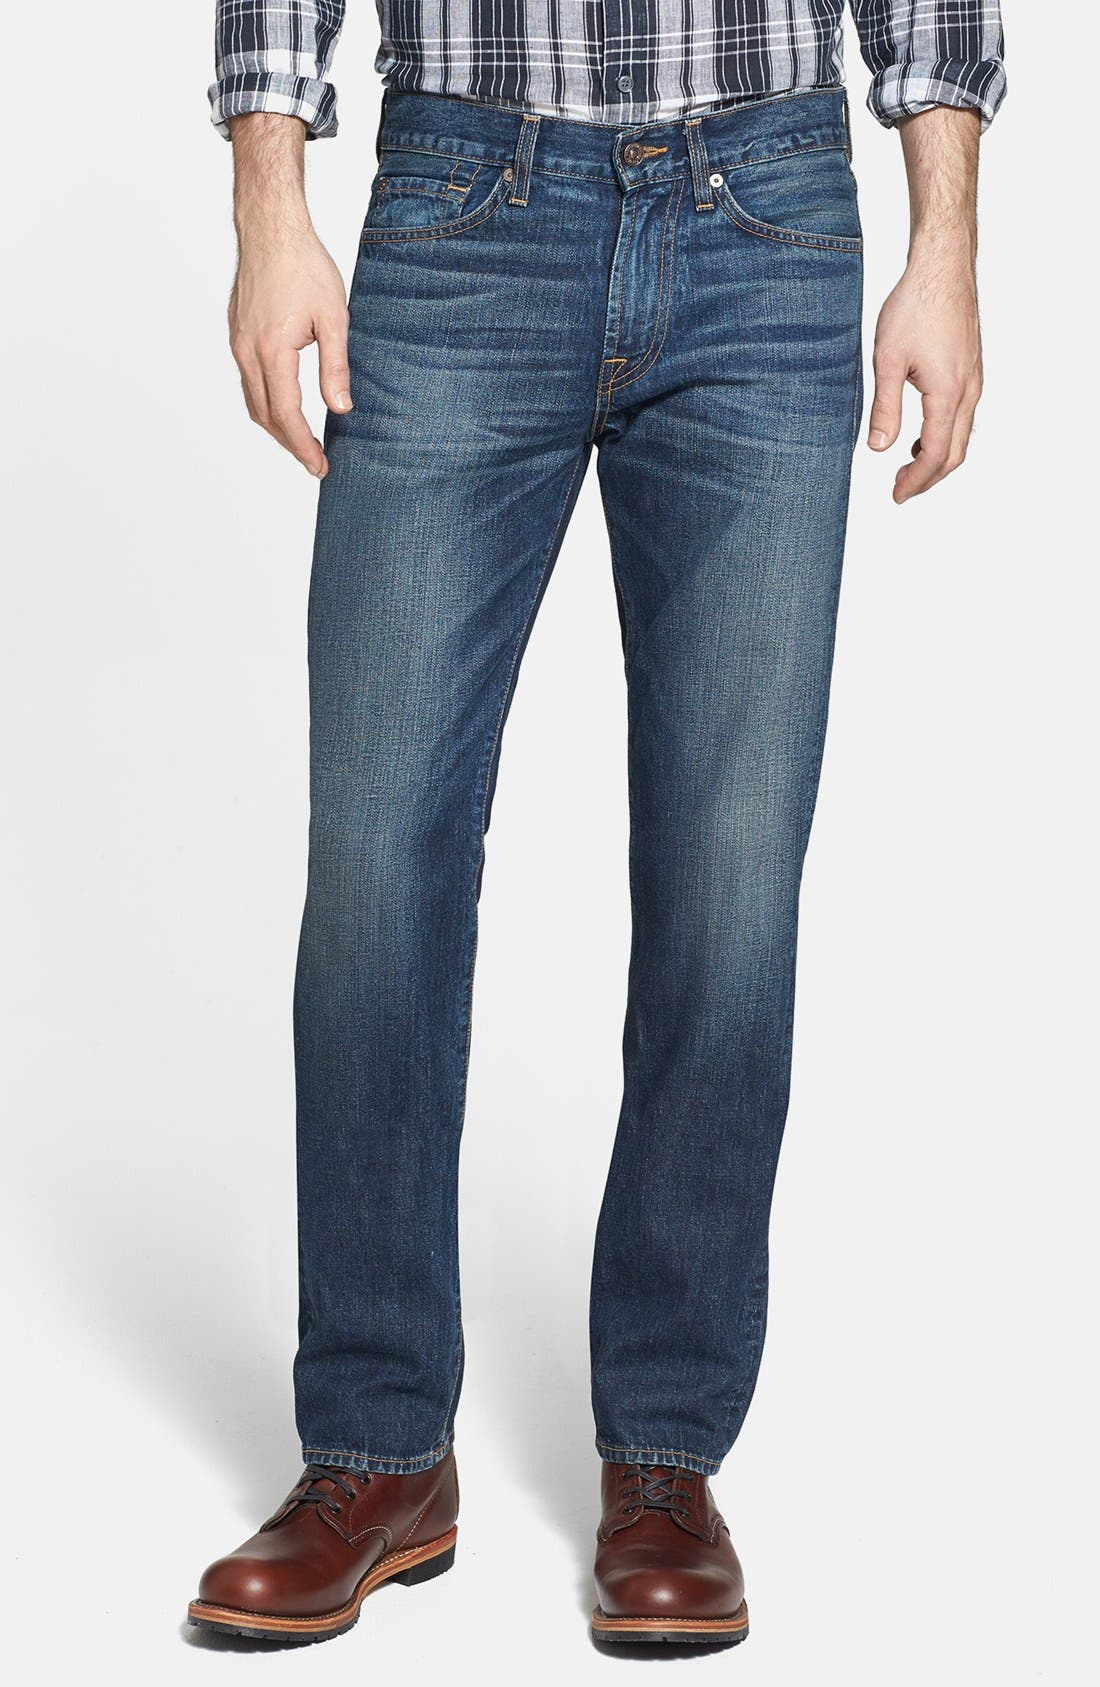 Alternate Image 1 Selected - 7 For All Mankind® 'Slimmy' Slim Fit Jeans (Shibuya Road)